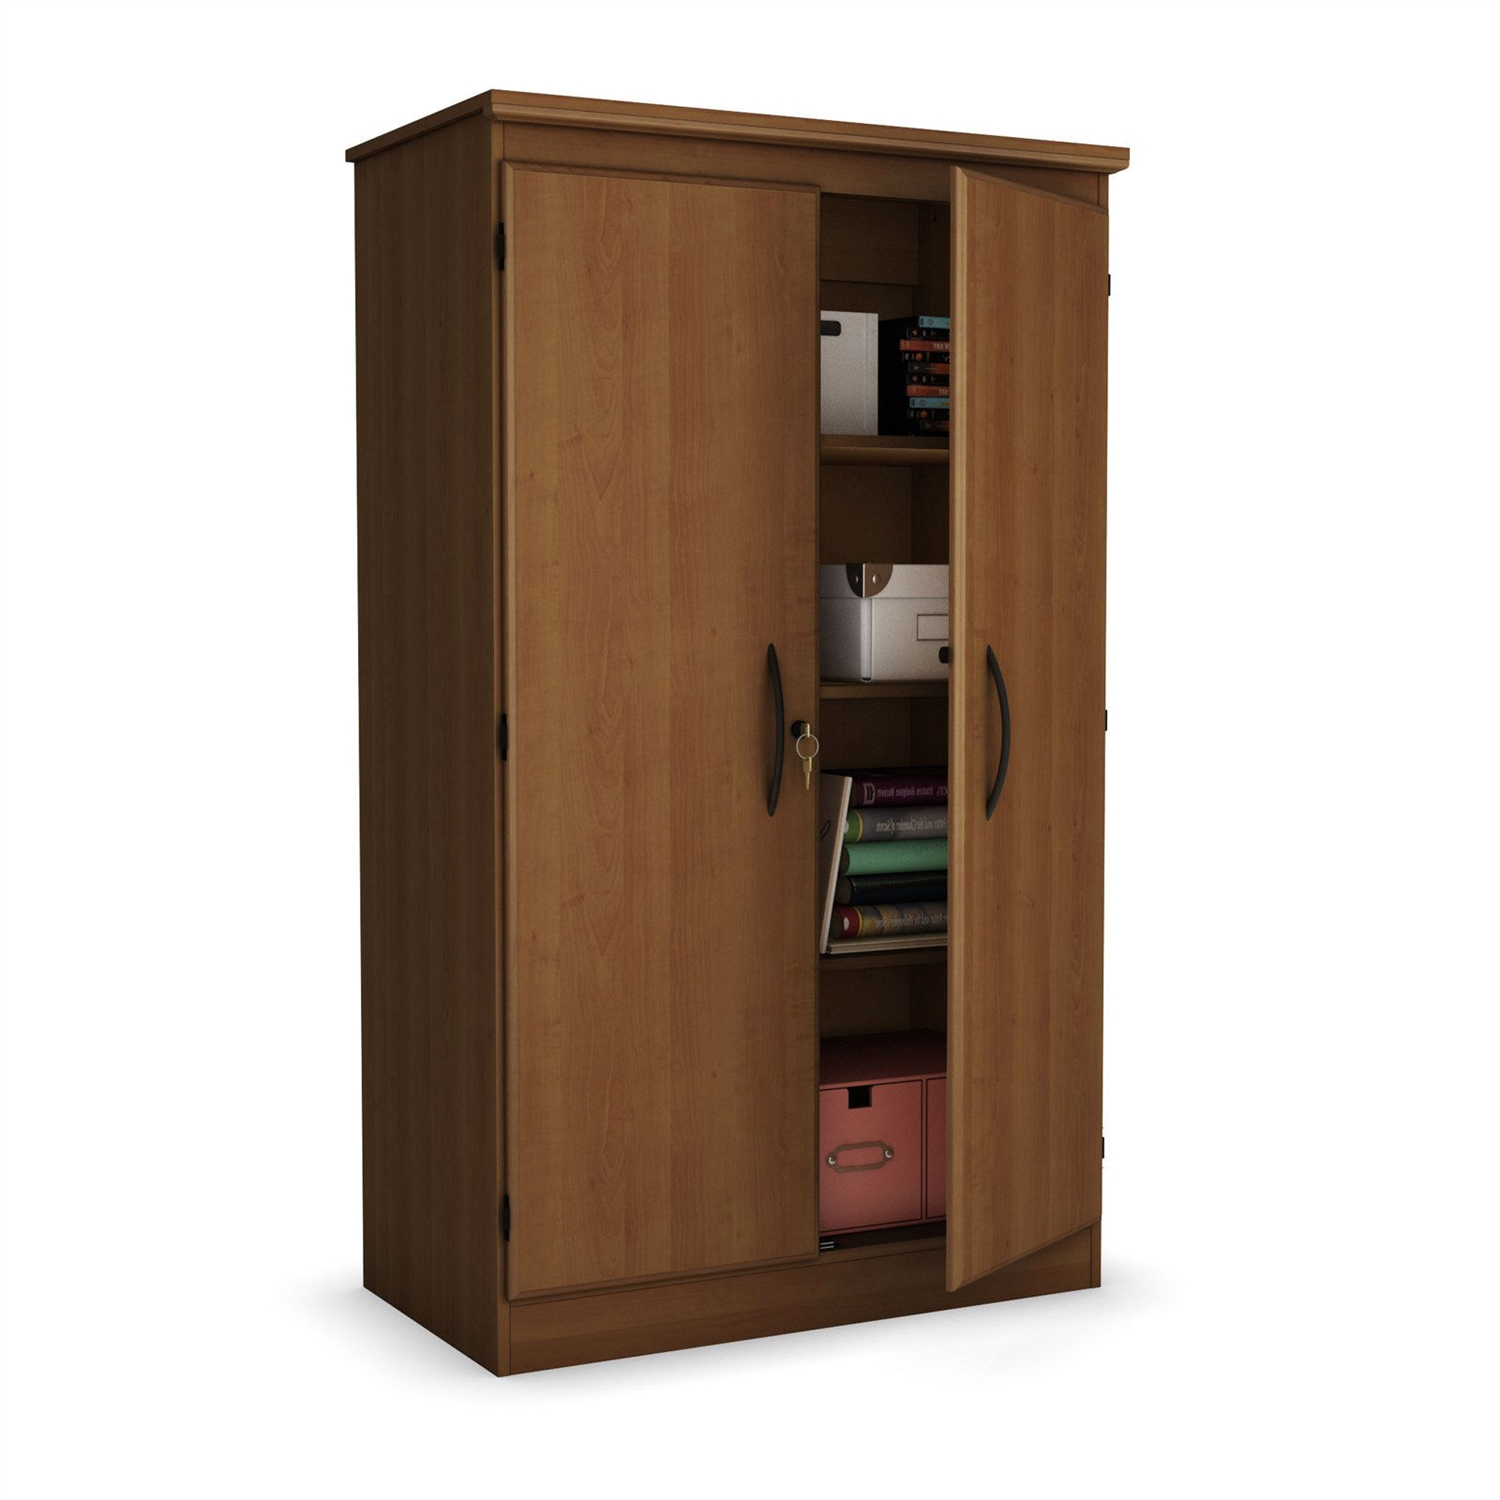 Wardrobe Storage Cabinet Cherry 2 Door Storage Cabinet Wardrobe Armoire For Bedroom